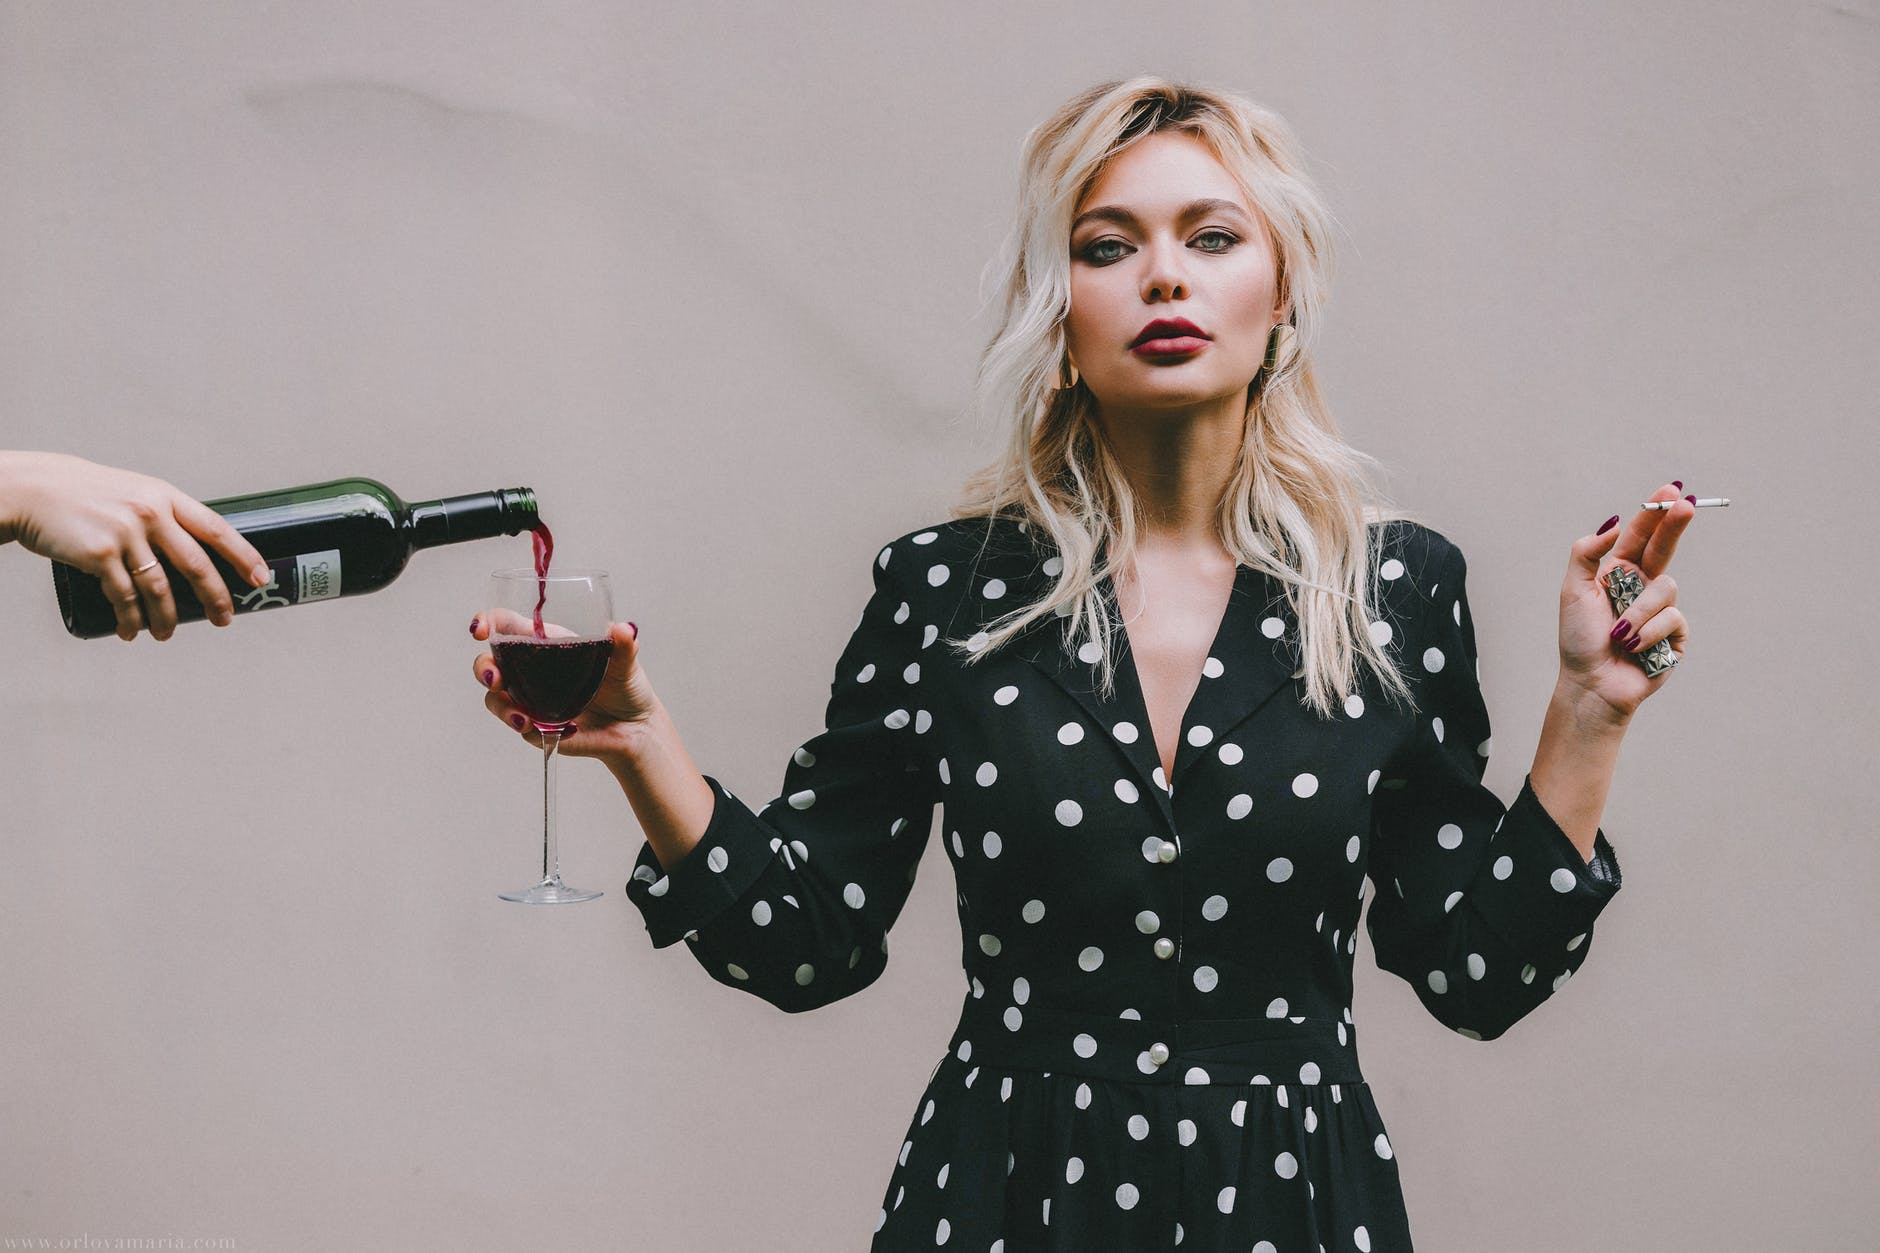 confident woman standing with wineglass and cigarette